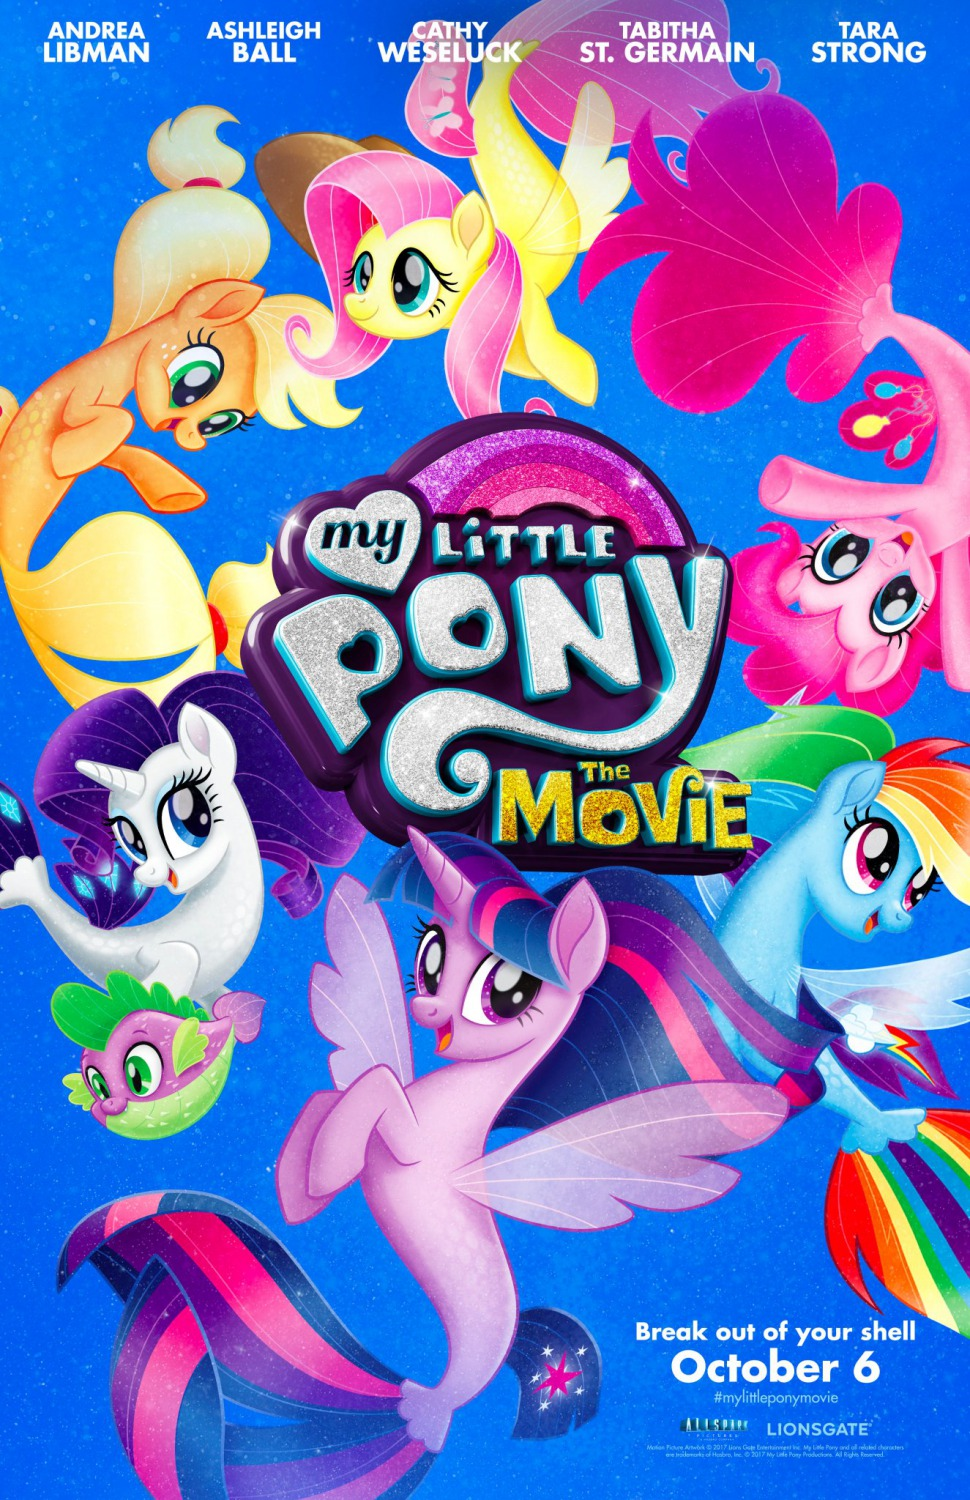 My little pony in the movie: a review of the cartoon